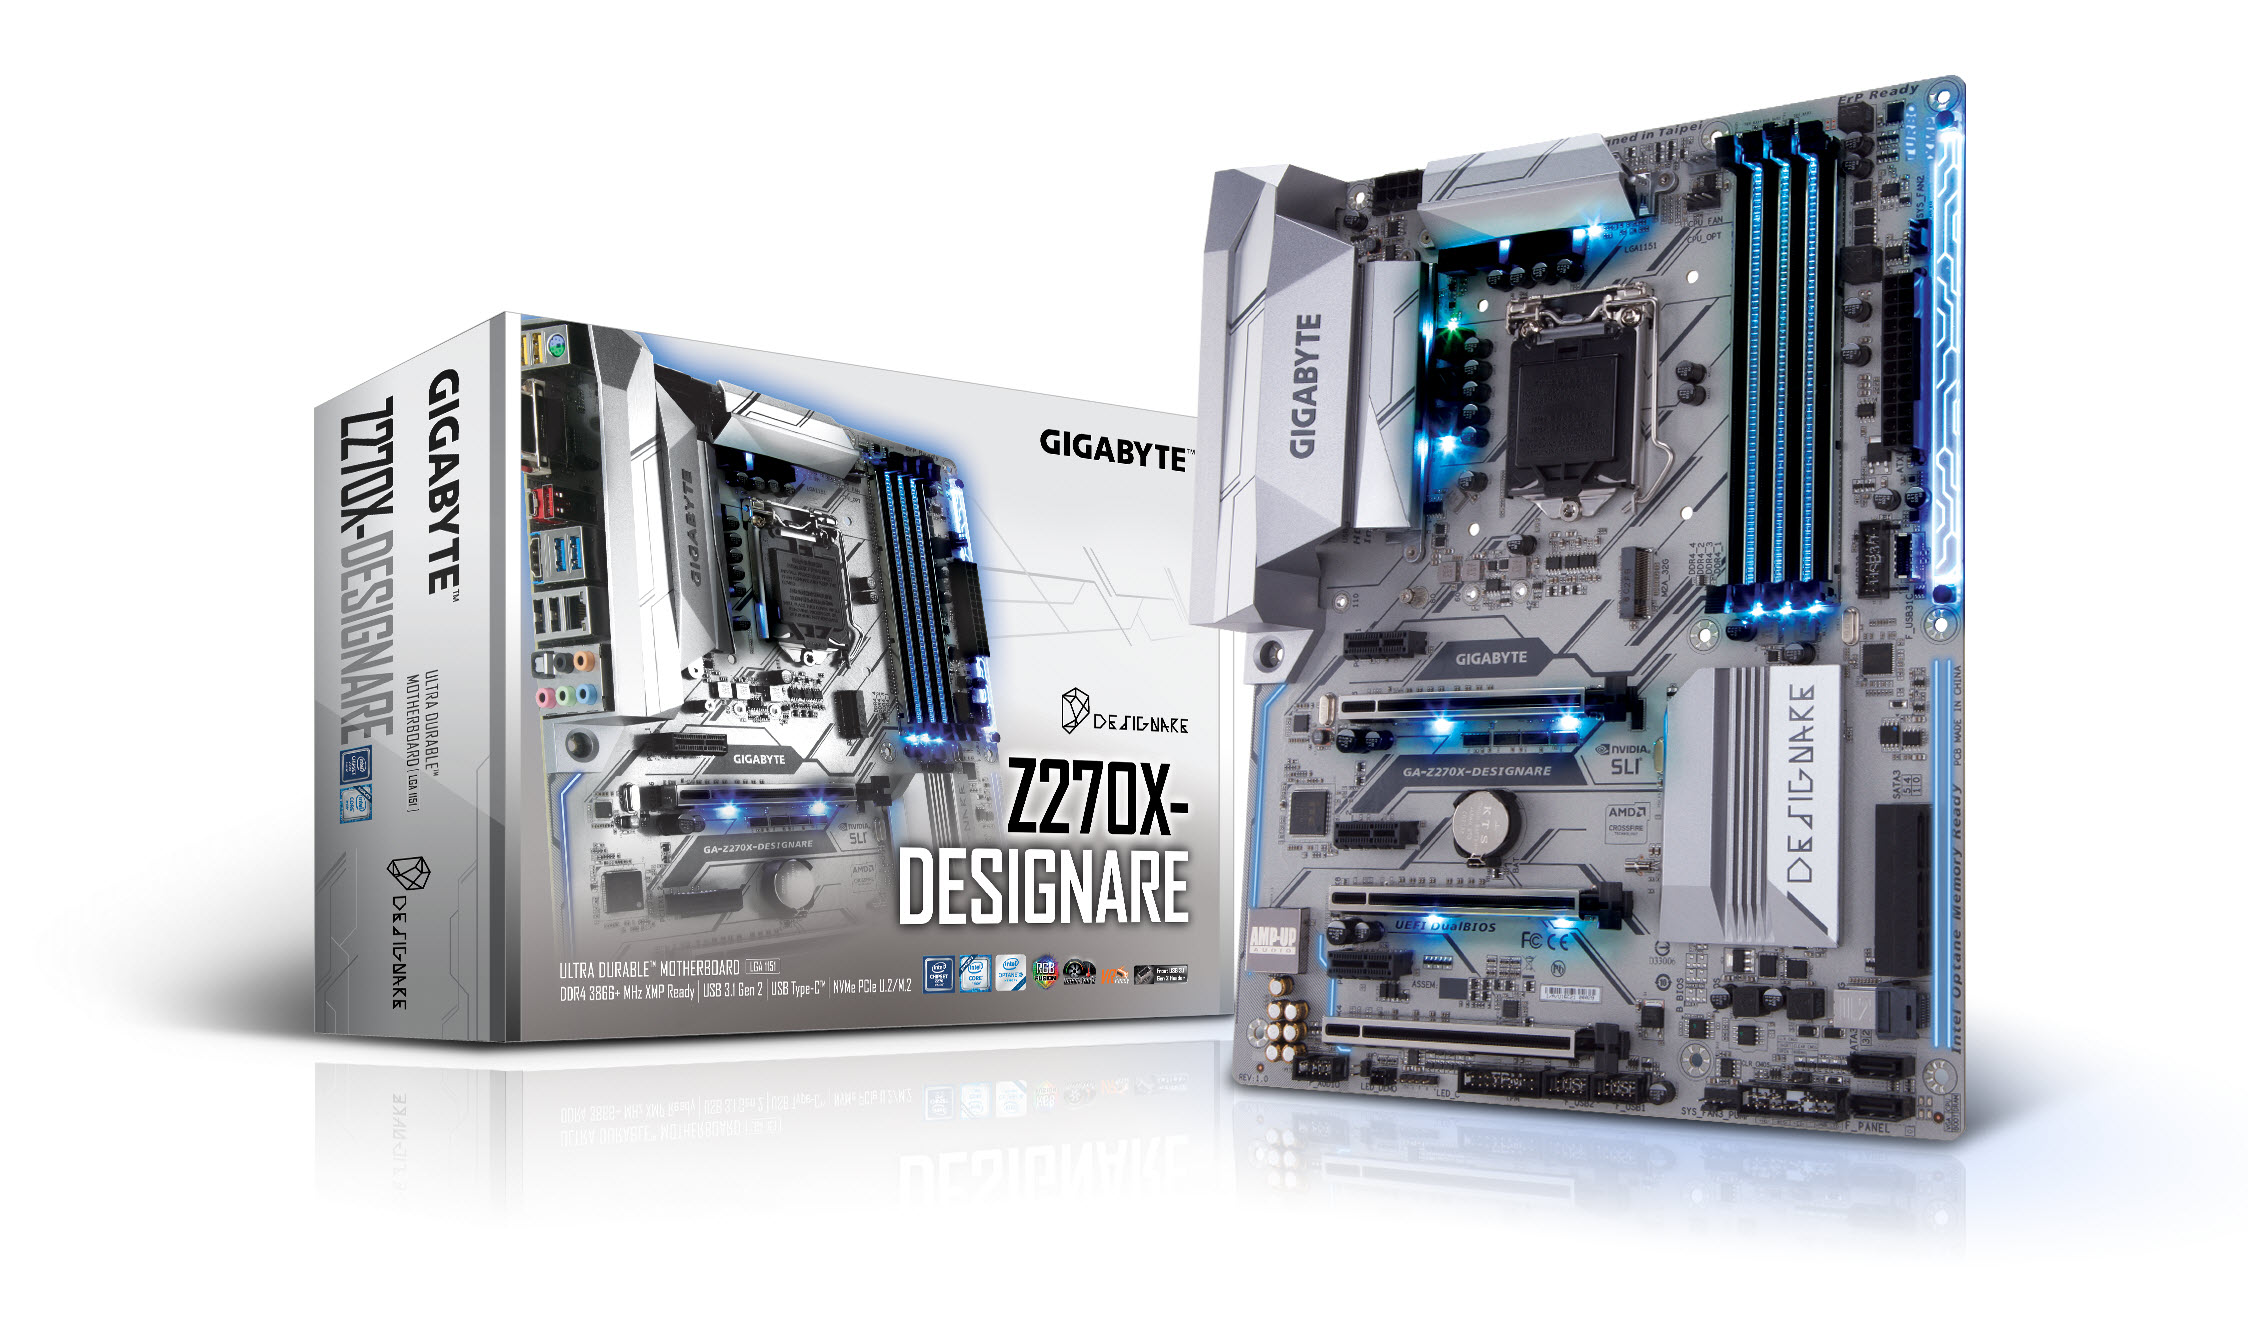 The motherboard created for professional designers / GIGABYTE TECHNOLOGY CO., LTD.